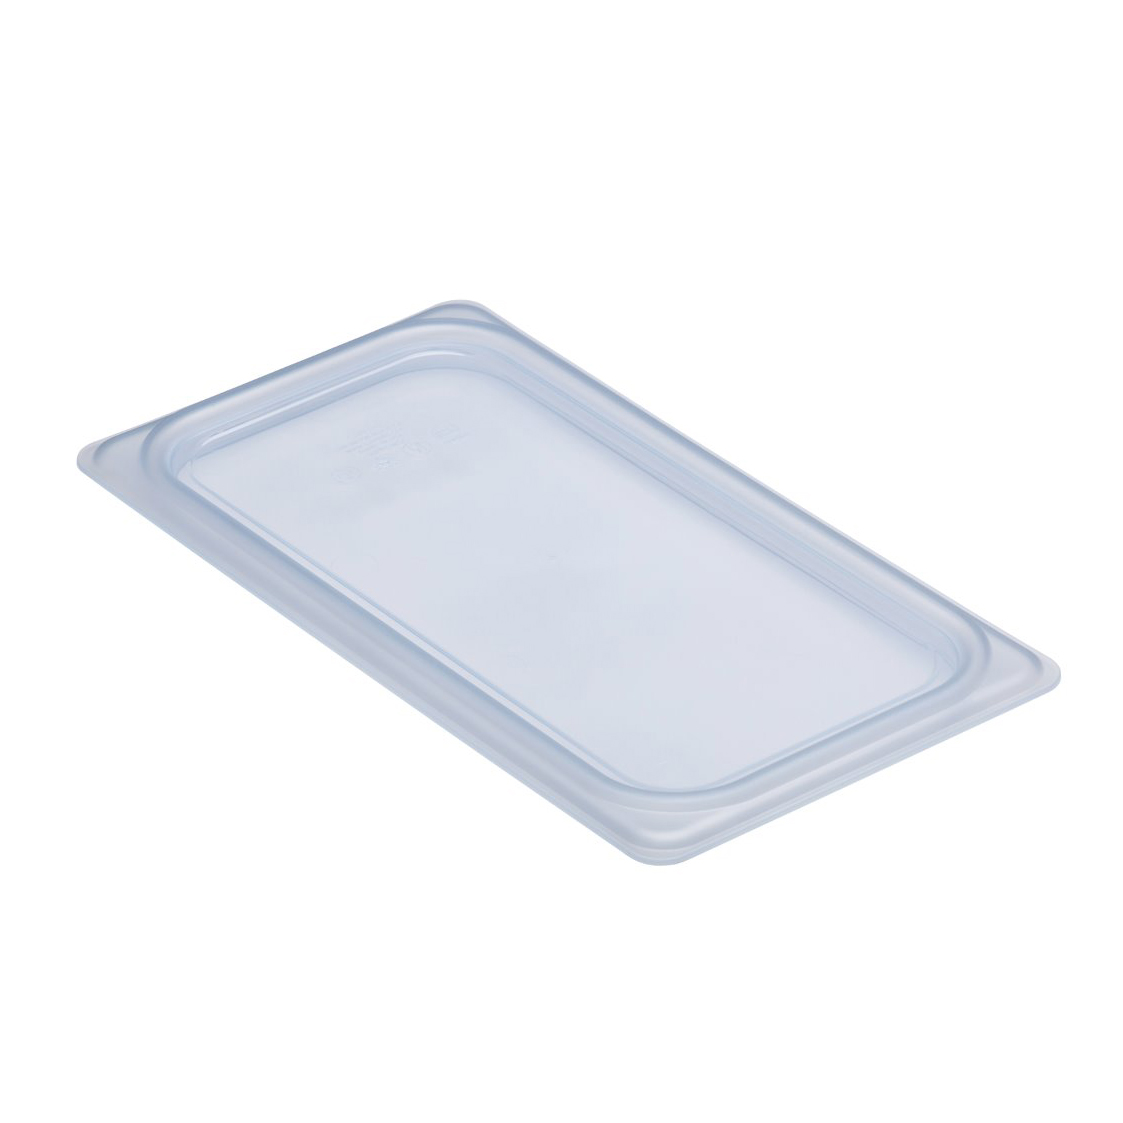 Cambro - 1/3 Size Clear Food Pan Cover | Public Kitchen Supply